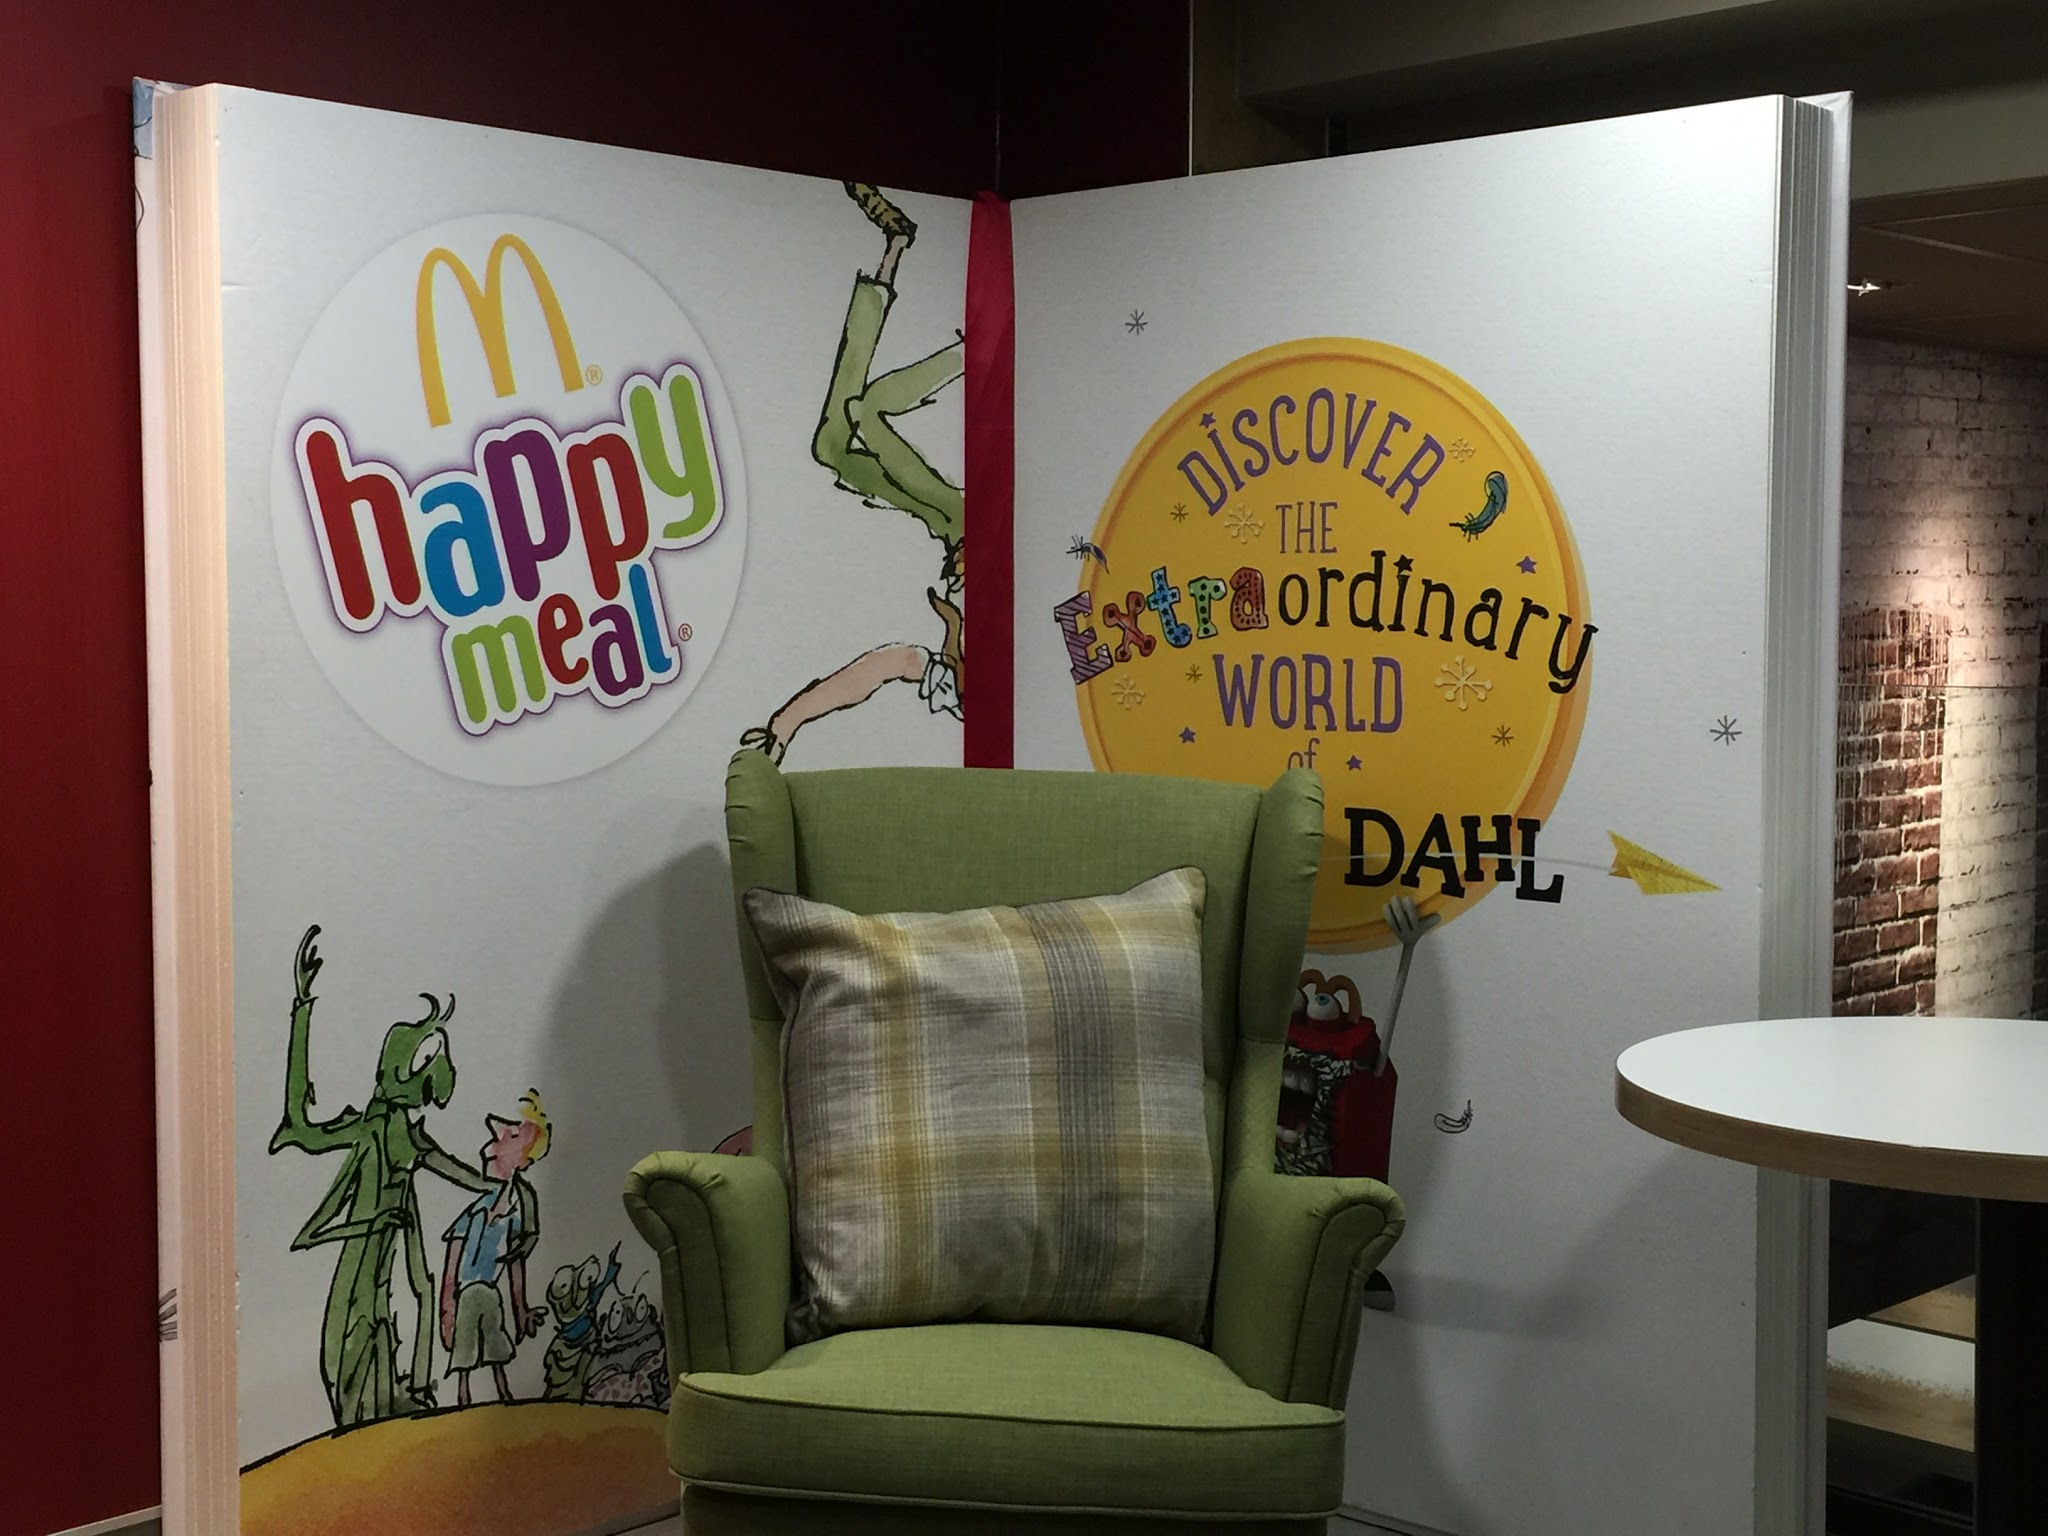 arm chair in McDonalds